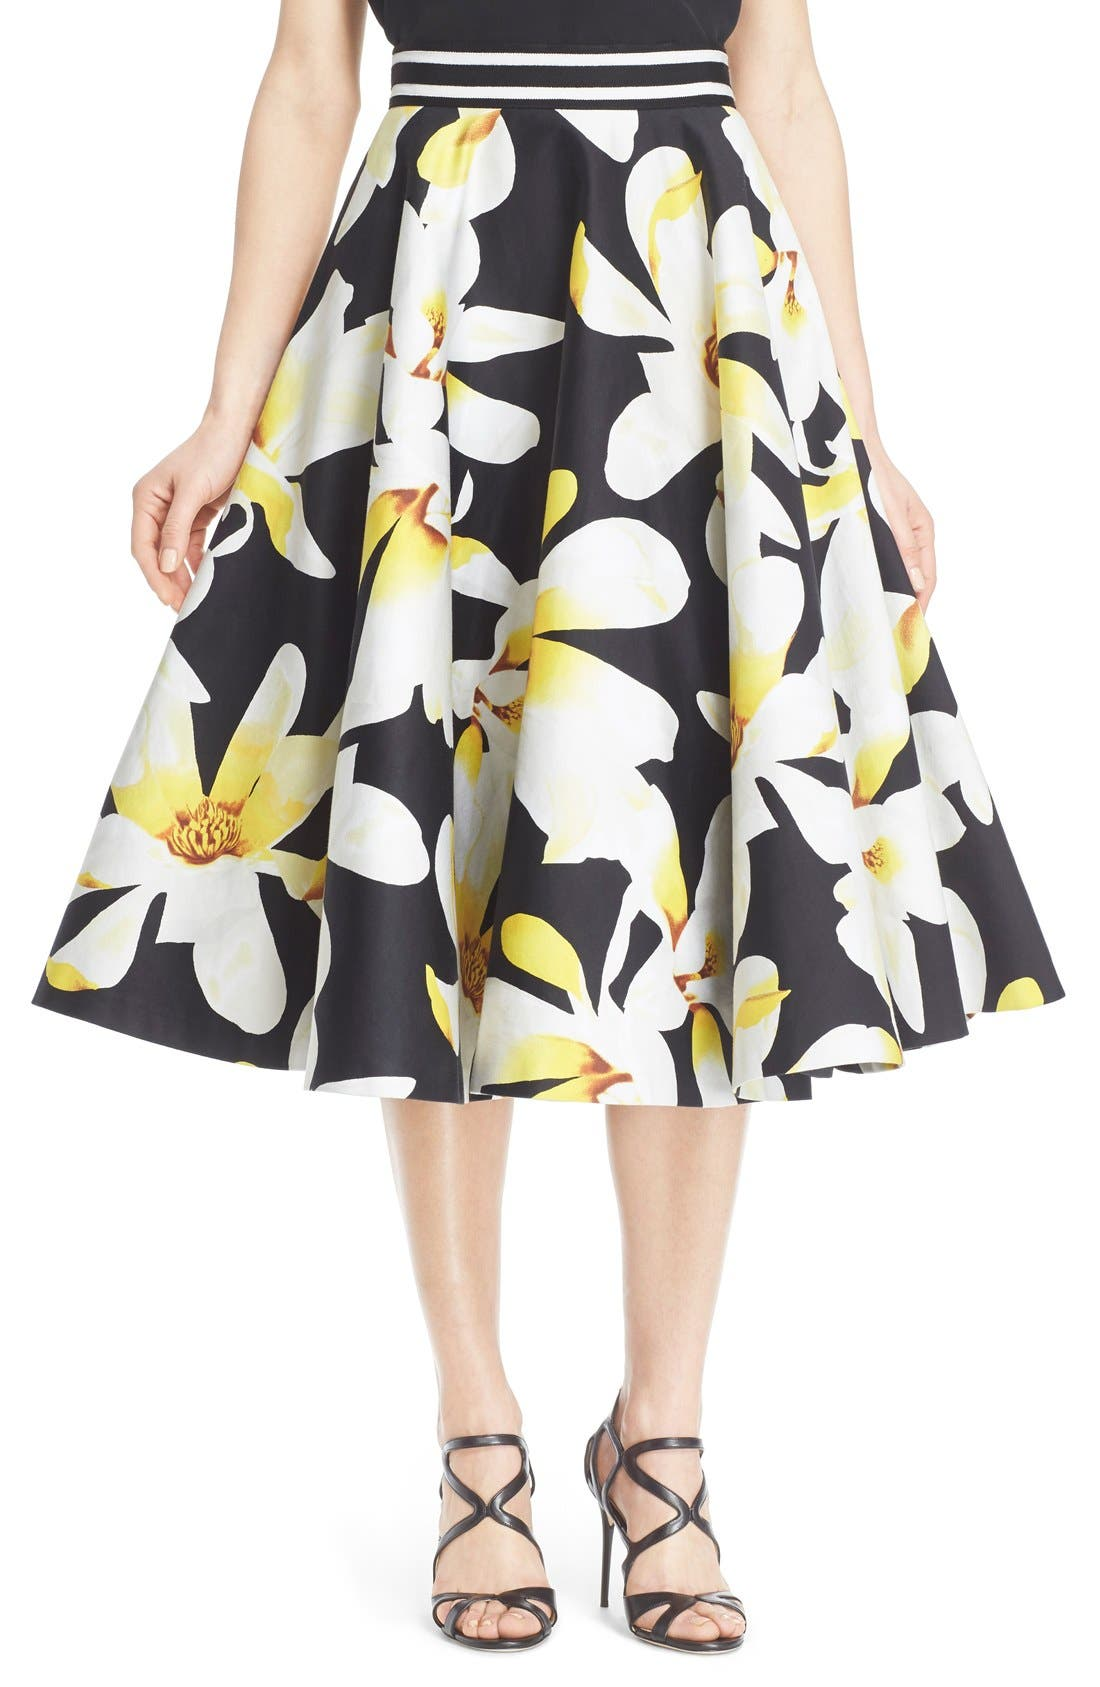 Alternate Image 1 Selected - Alice + Olivia 'Dianna' Floral Print Circle Skirt